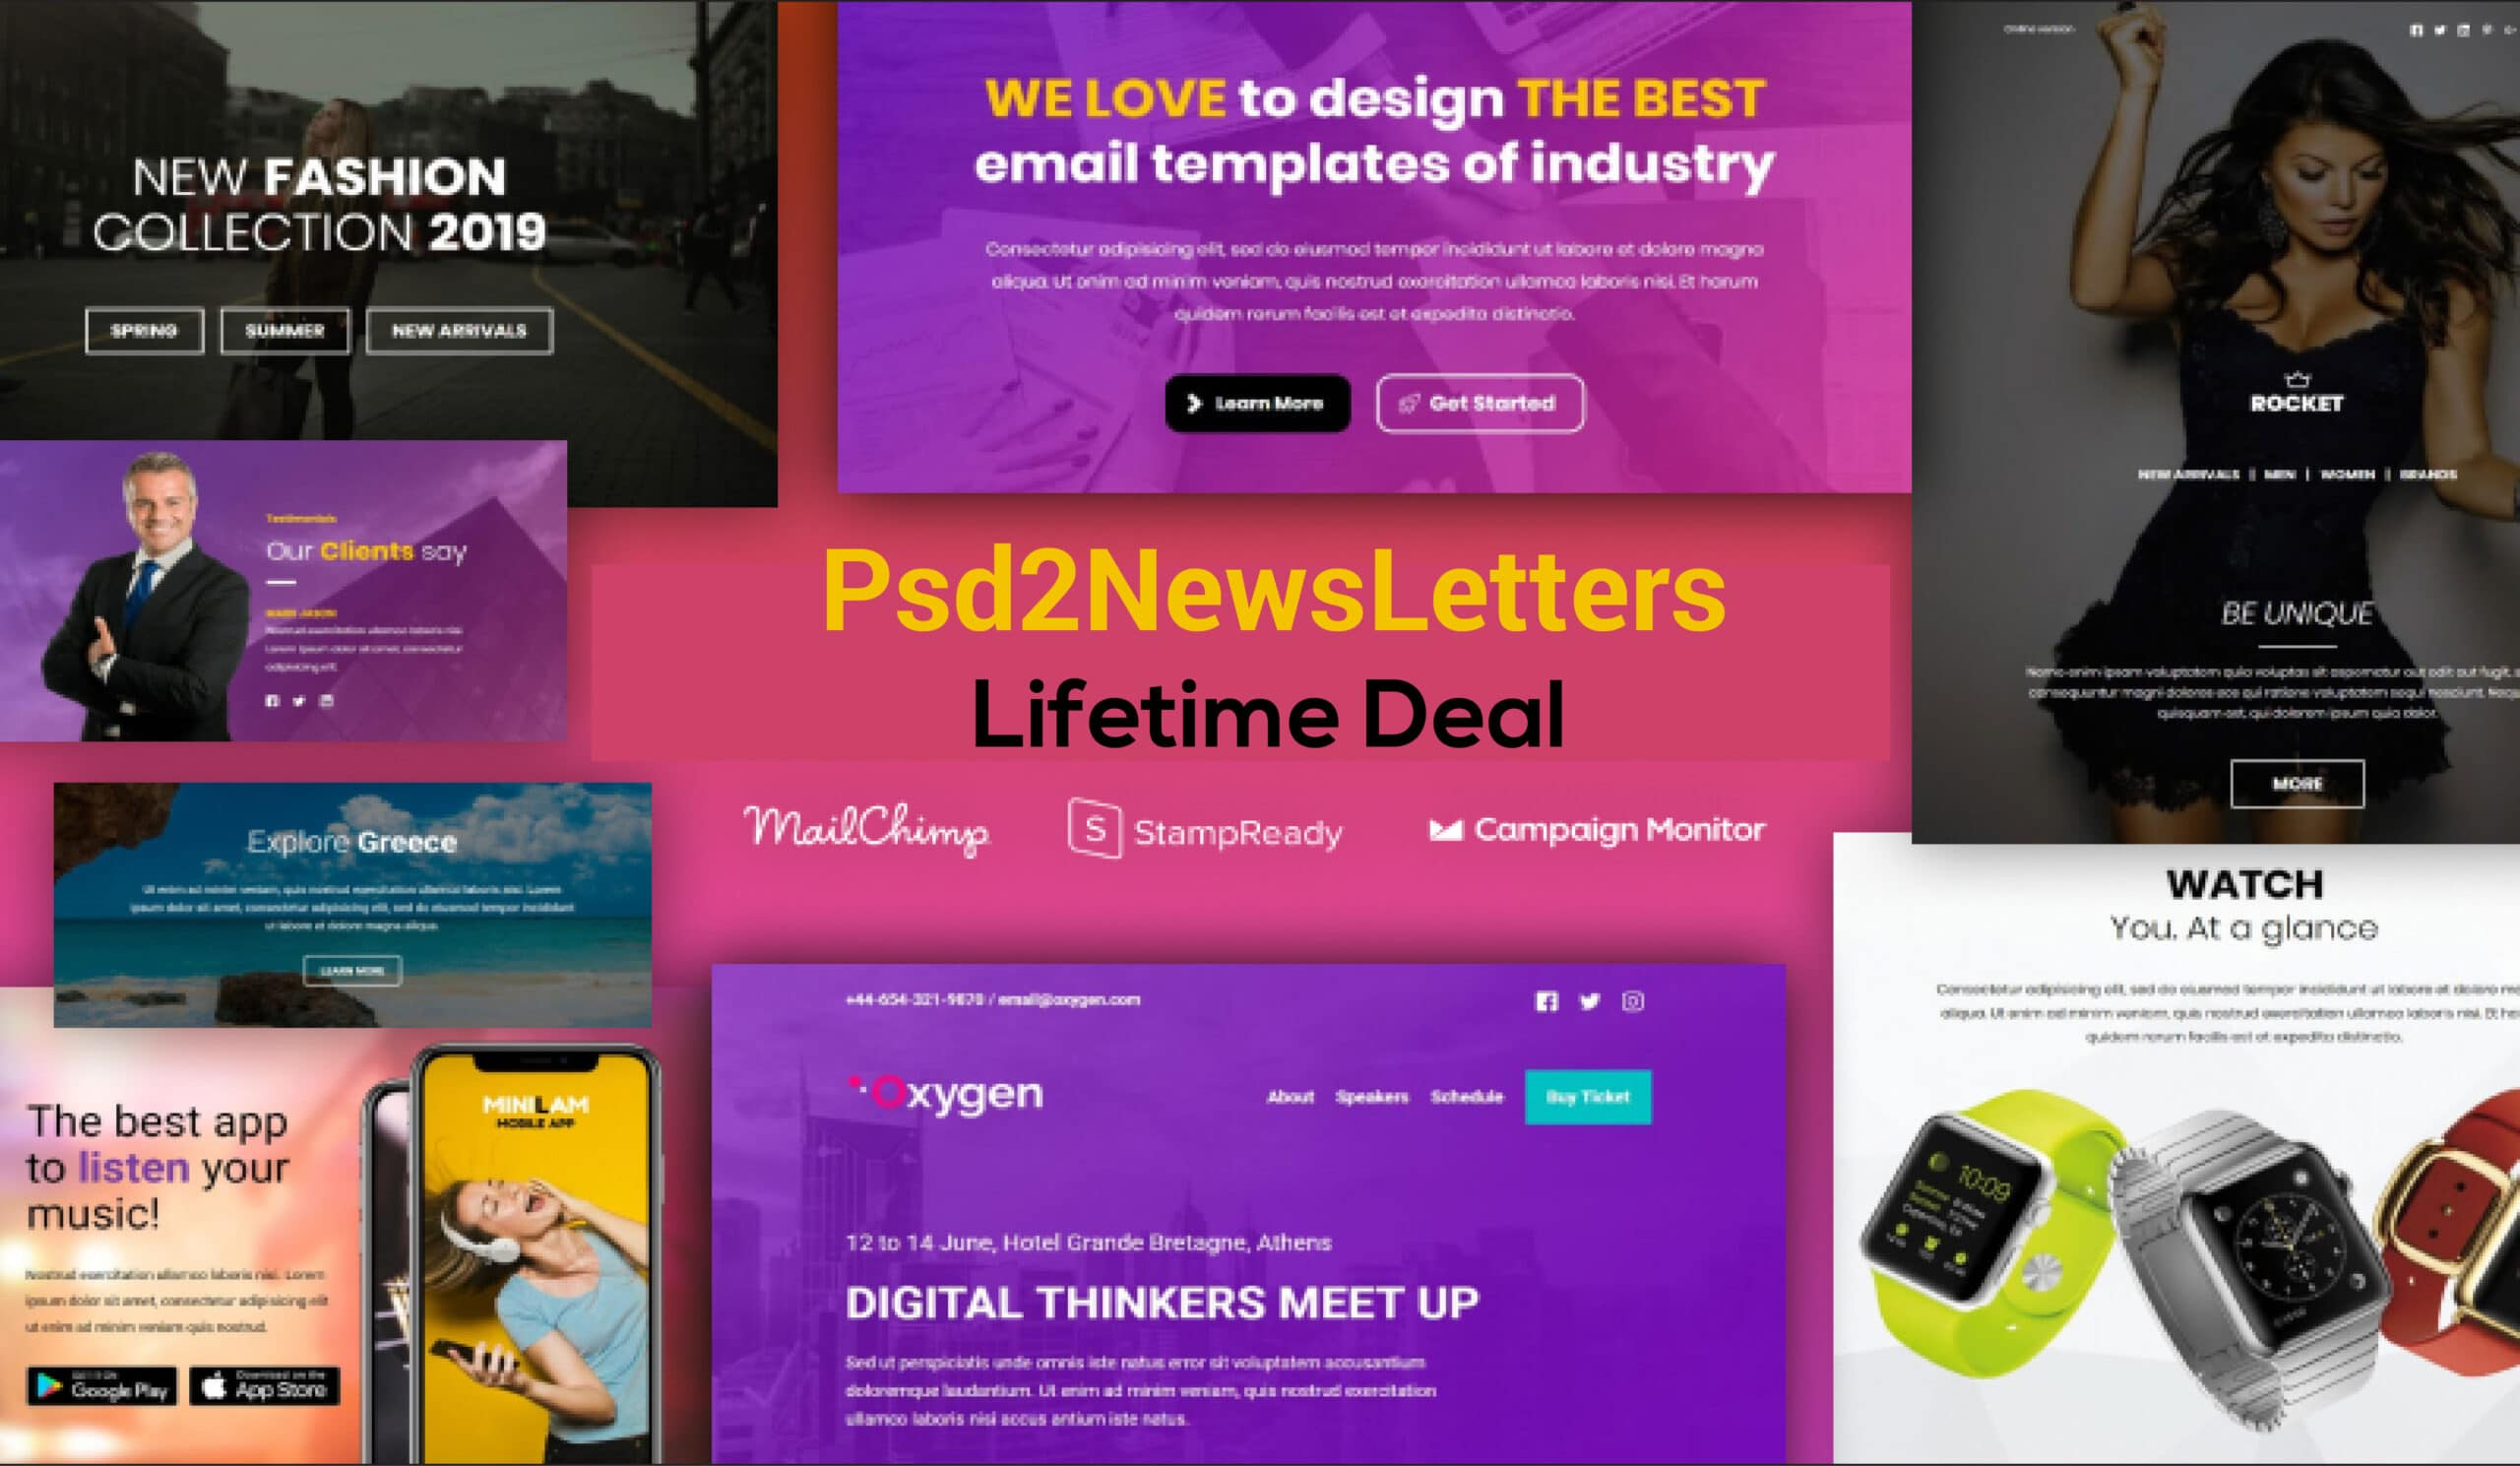 Psd2Newsletters Lifetime Deal